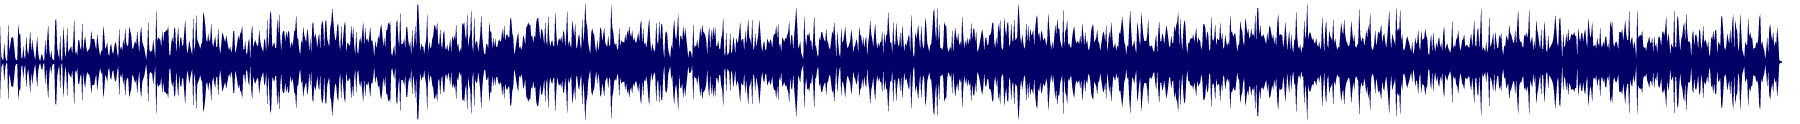 waveform of track #77478